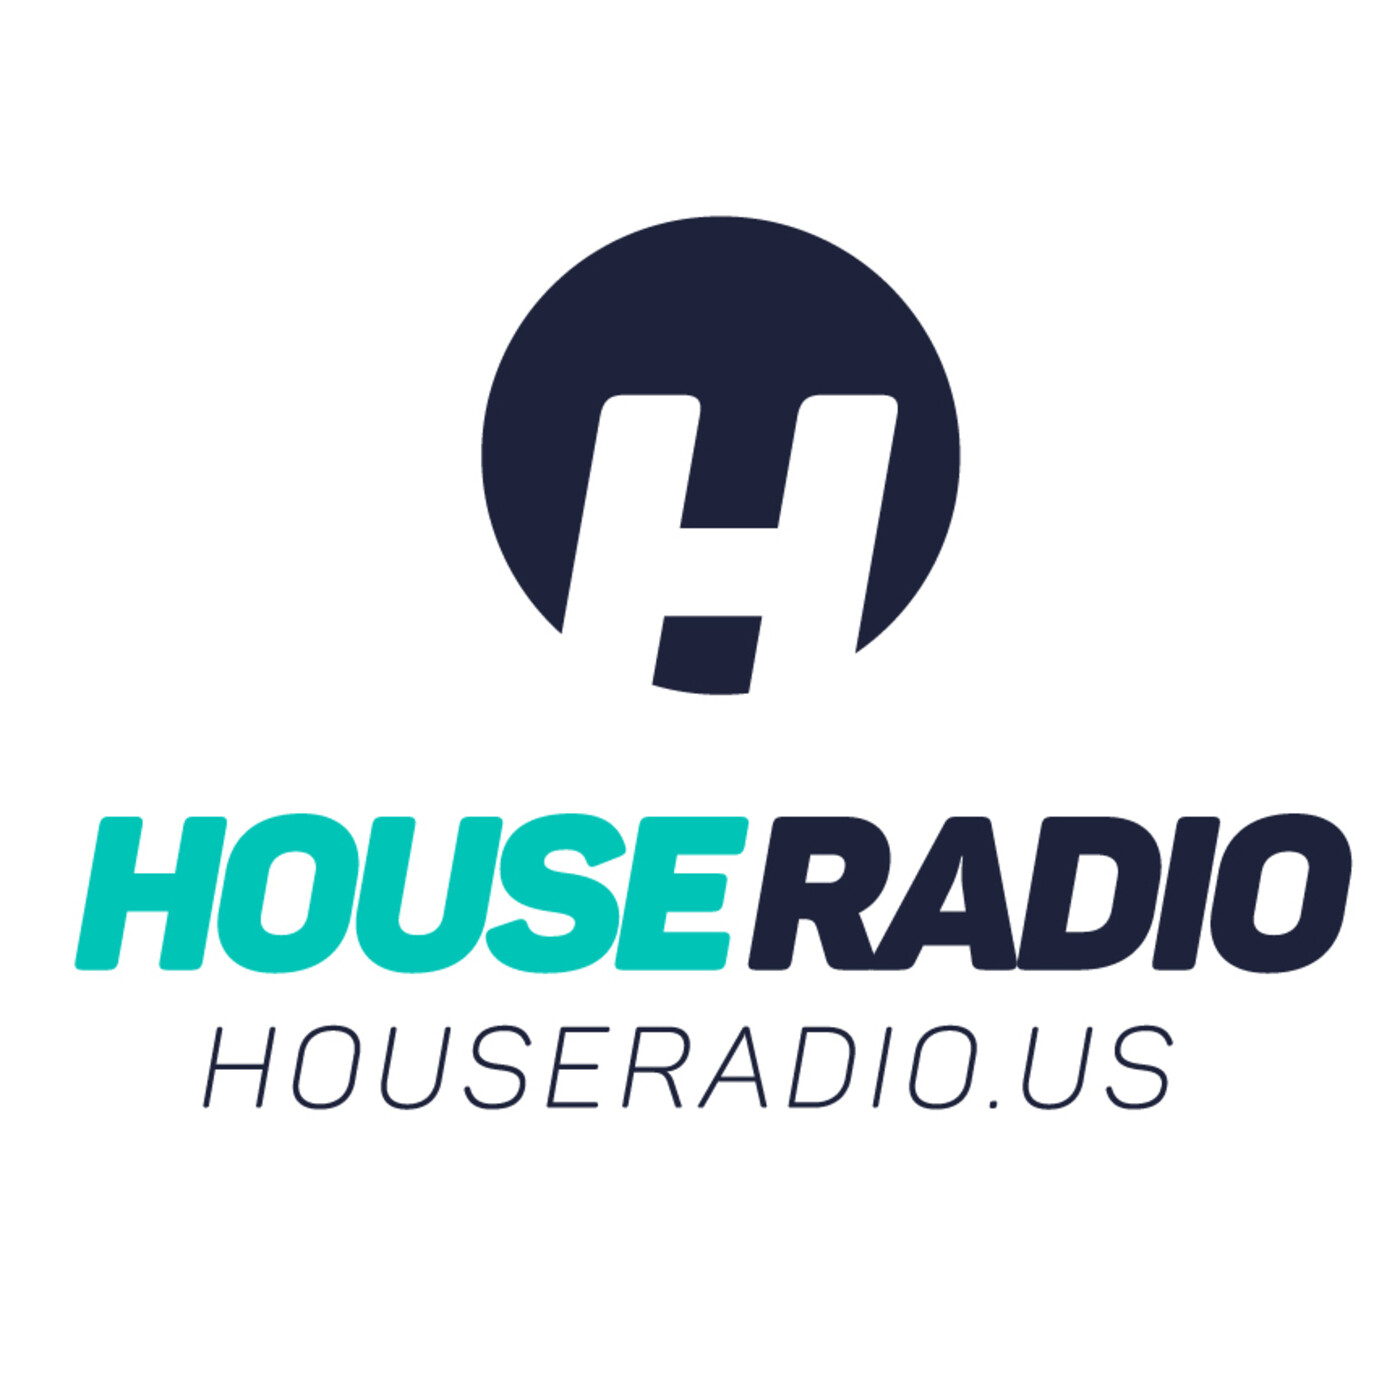 HouseRadio.US